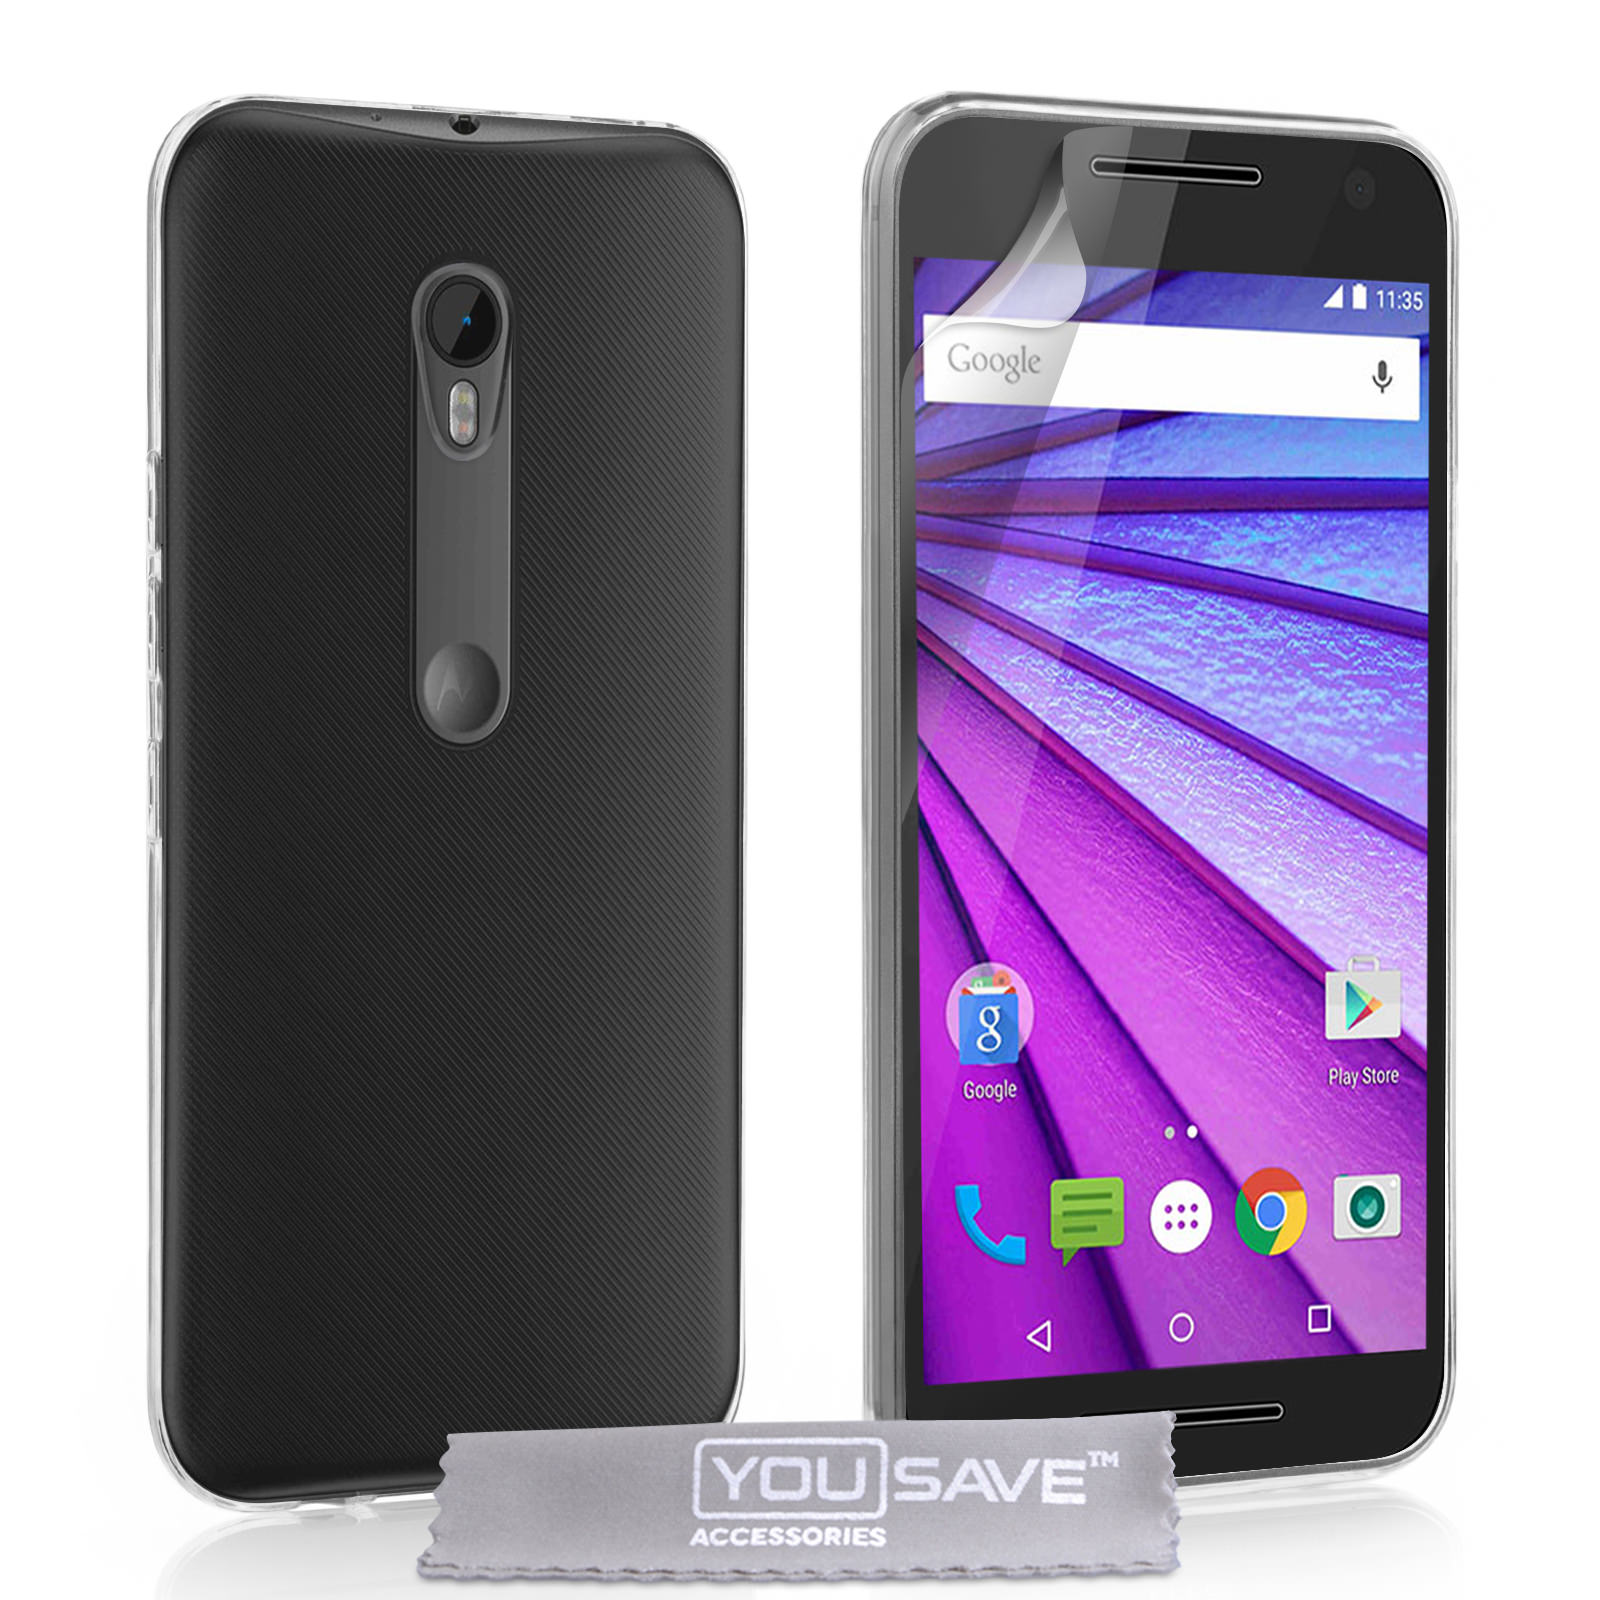 Yousave Accessories Motorola Moto G 3rd Gen Ultra-Thin 0.6mm Case - Clear